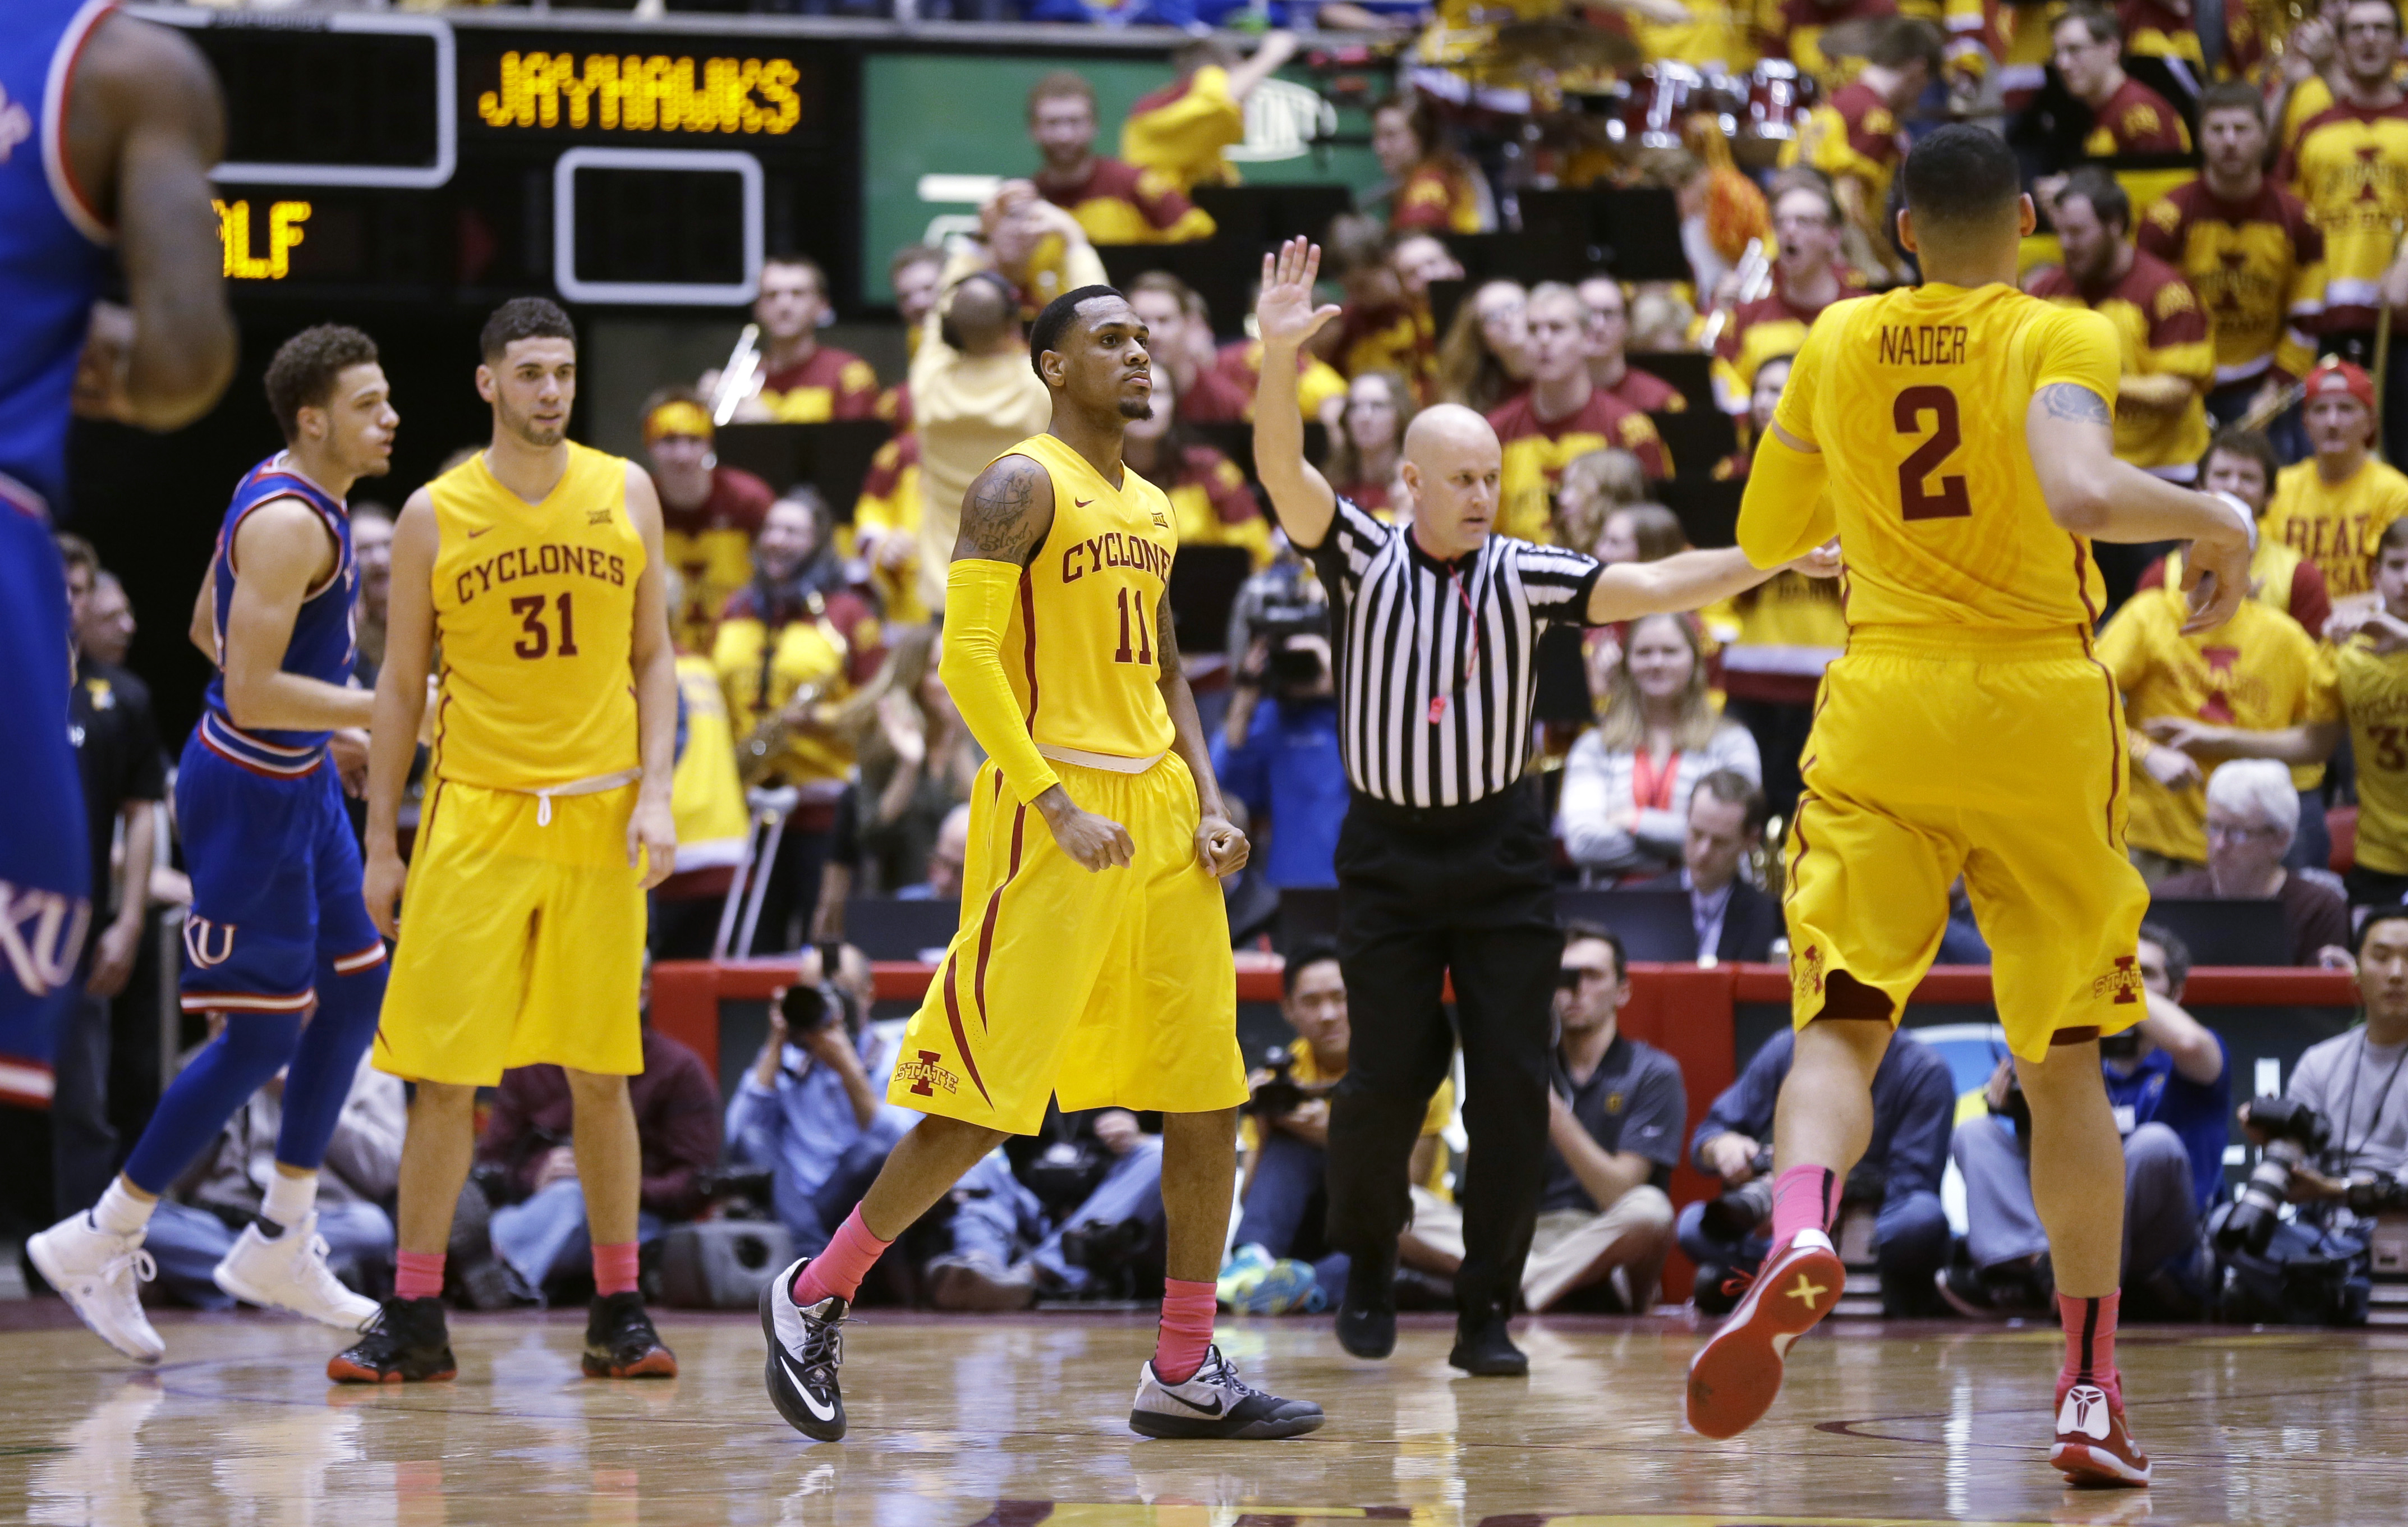 Iowa State guard Monte Morris (11) celebrates with teammates after making a basket during the second half of an NCAA college basketball game against Kansas, Monday, Jan. 25, 2016, in Ames, Iowa. (AP Photo/Charlie Neibergall)